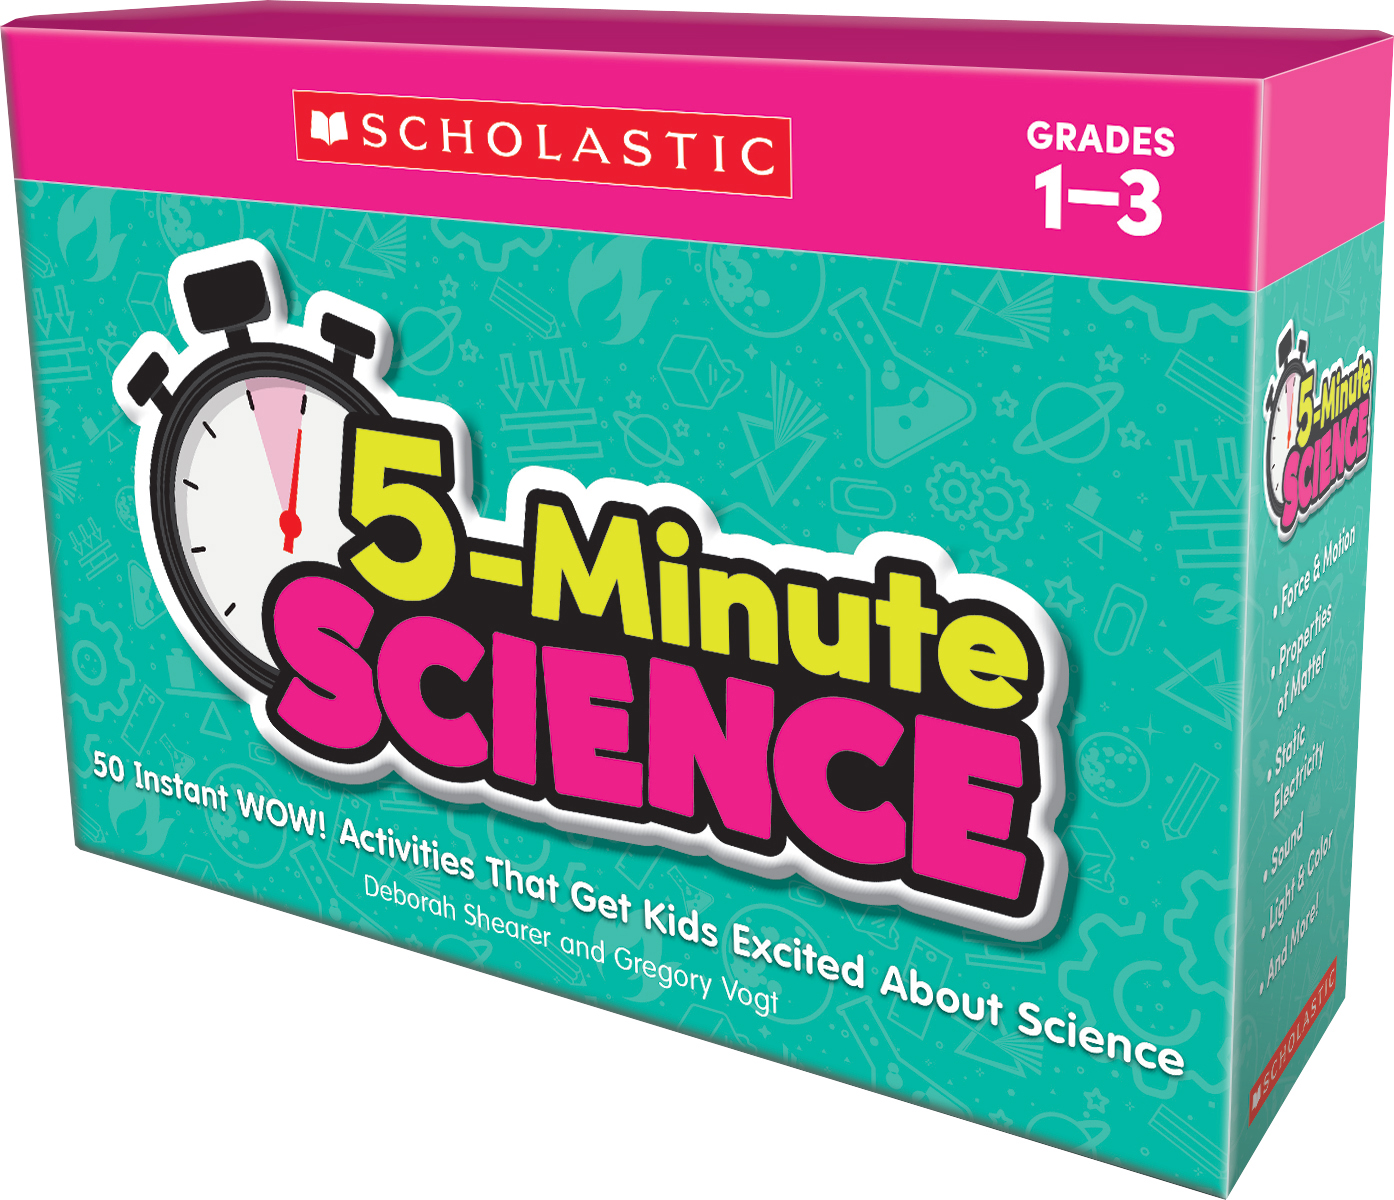 5-Minute Science: Grades 1-3